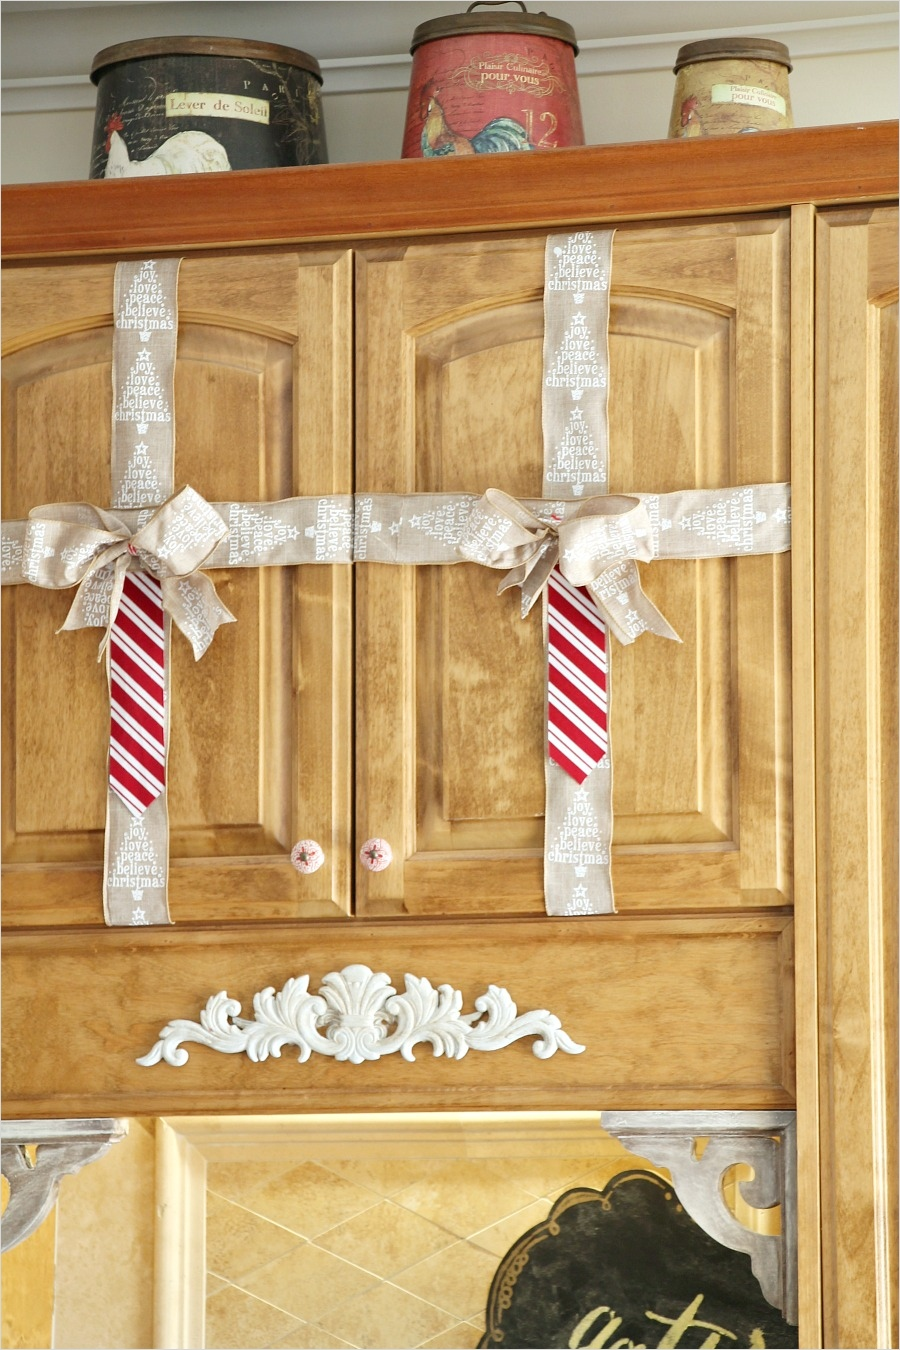 42 Awesome Kitchen Christmas Decorating Ideas 37 Simple Christmas Decorating Ideas In the Kitchen Debbiedoos 5